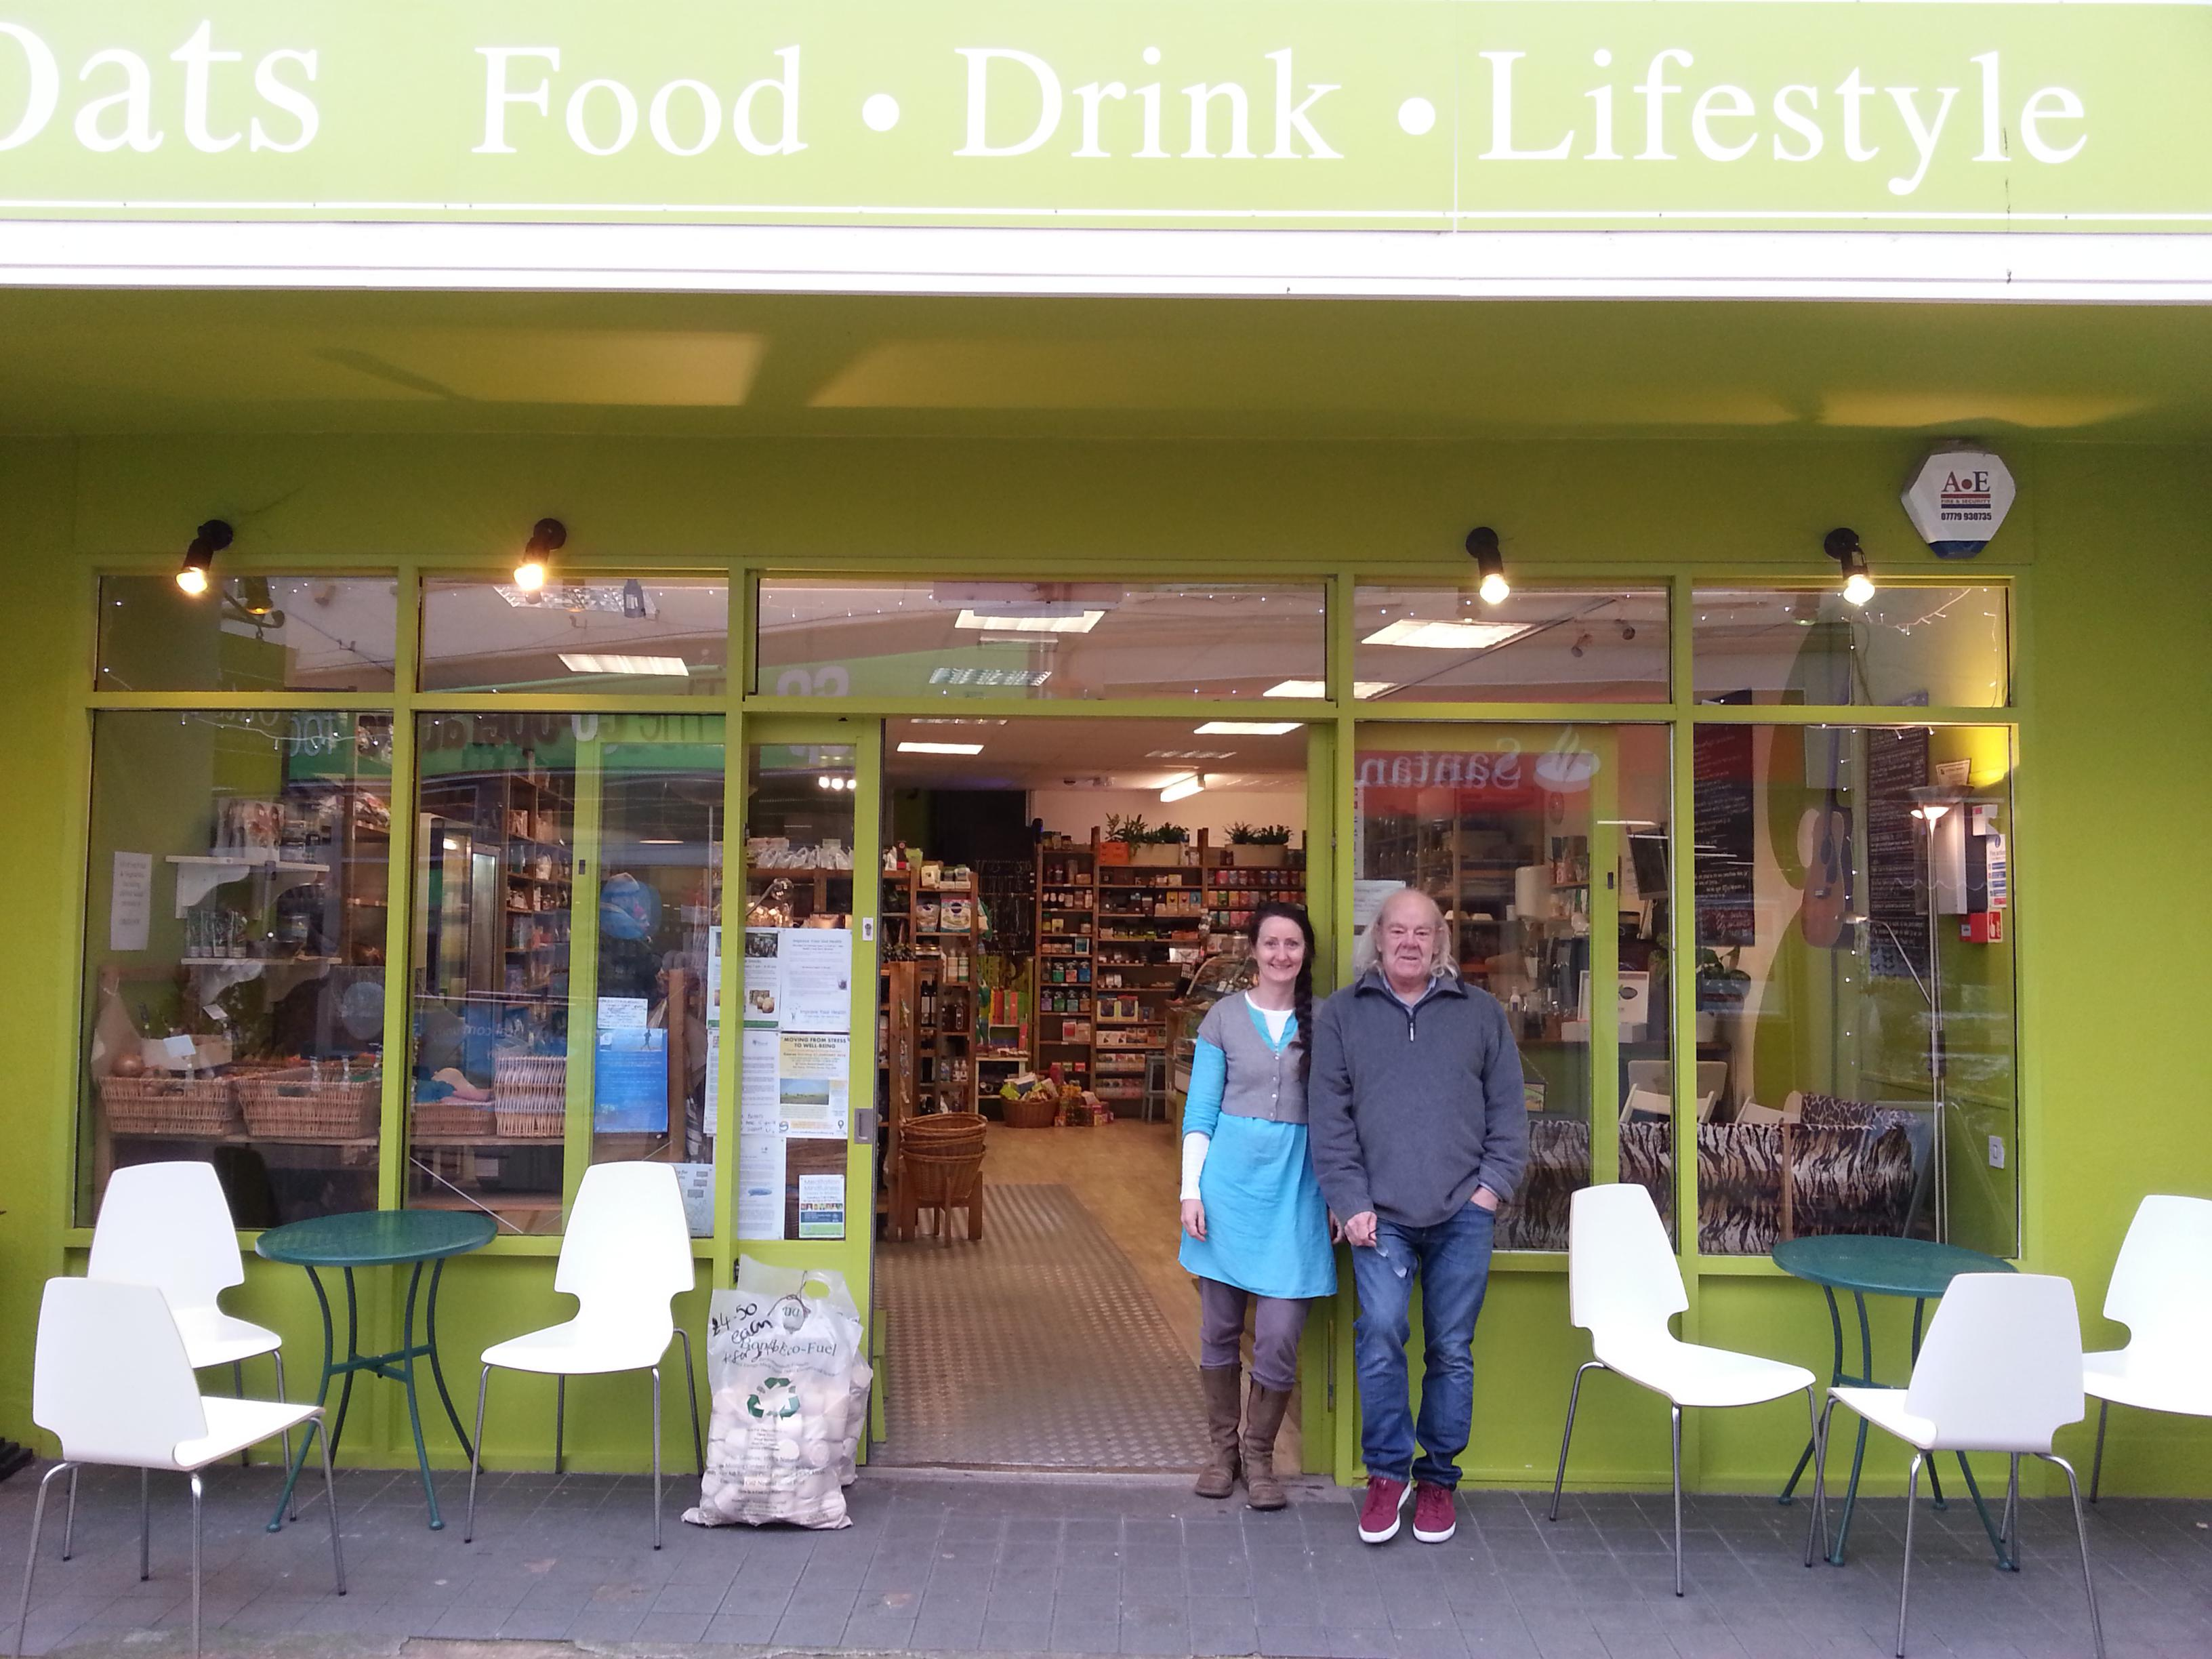 shop front view of Oats Healthy Living Store